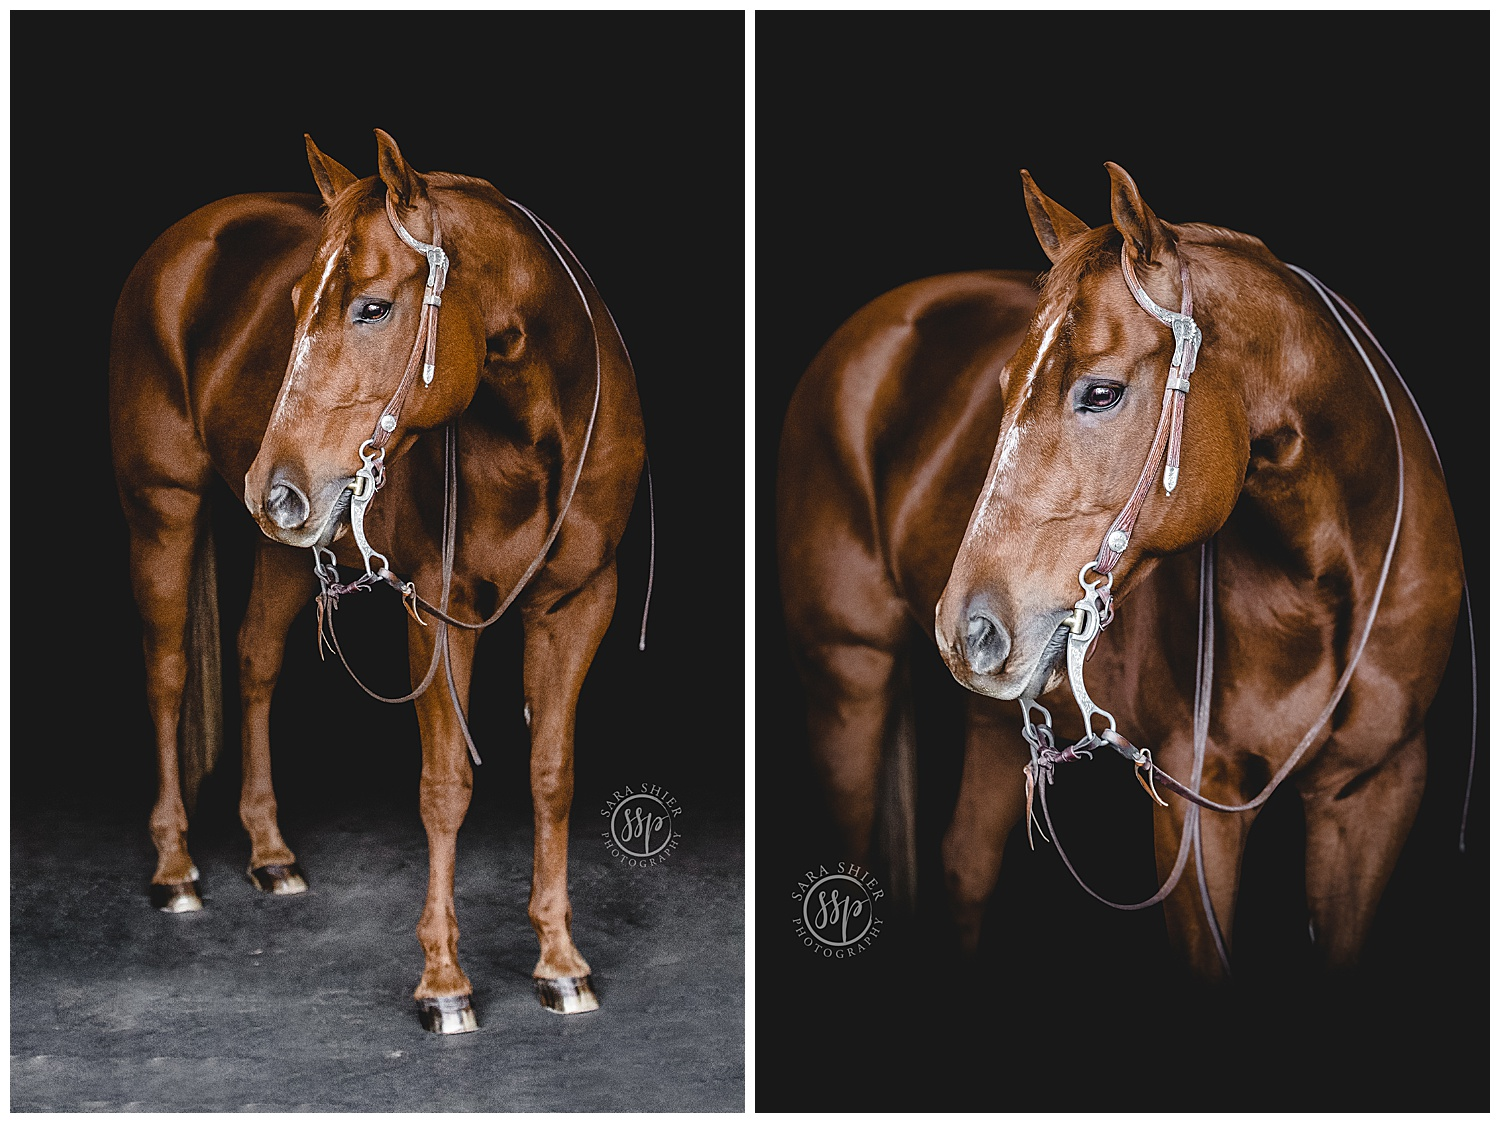 Black Background Horse Rider Equine Photographer Southern California Sara Shier Photography SoCal Equestrian Cowgirl_0335.jpg